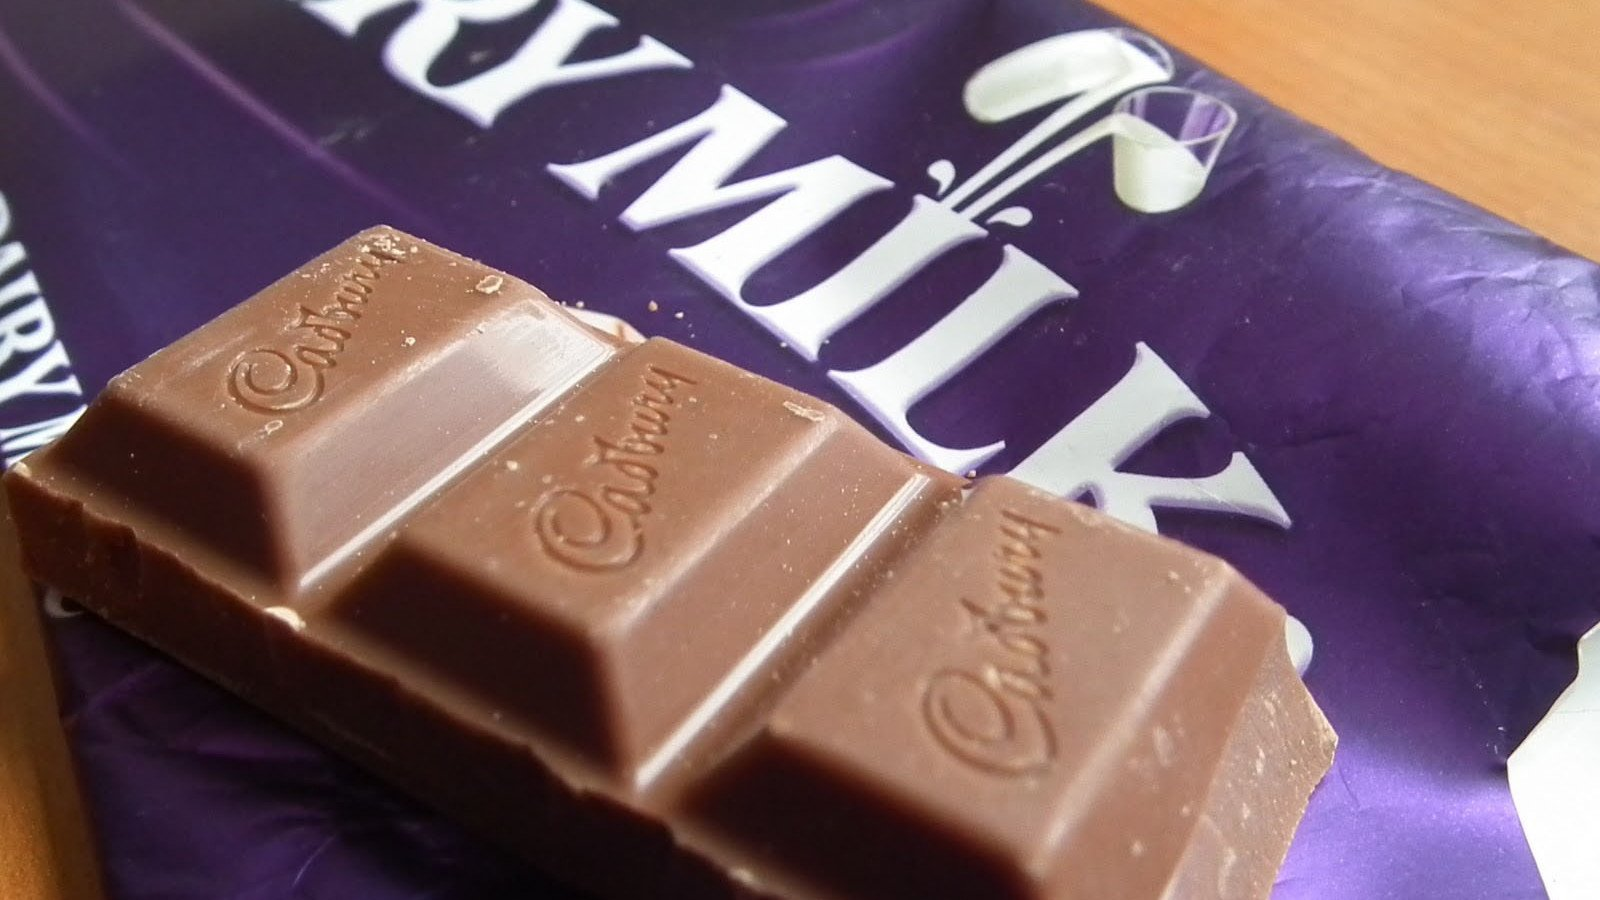 Dairy Milk Chocolate Wallpapers in HD Photos 1600x900